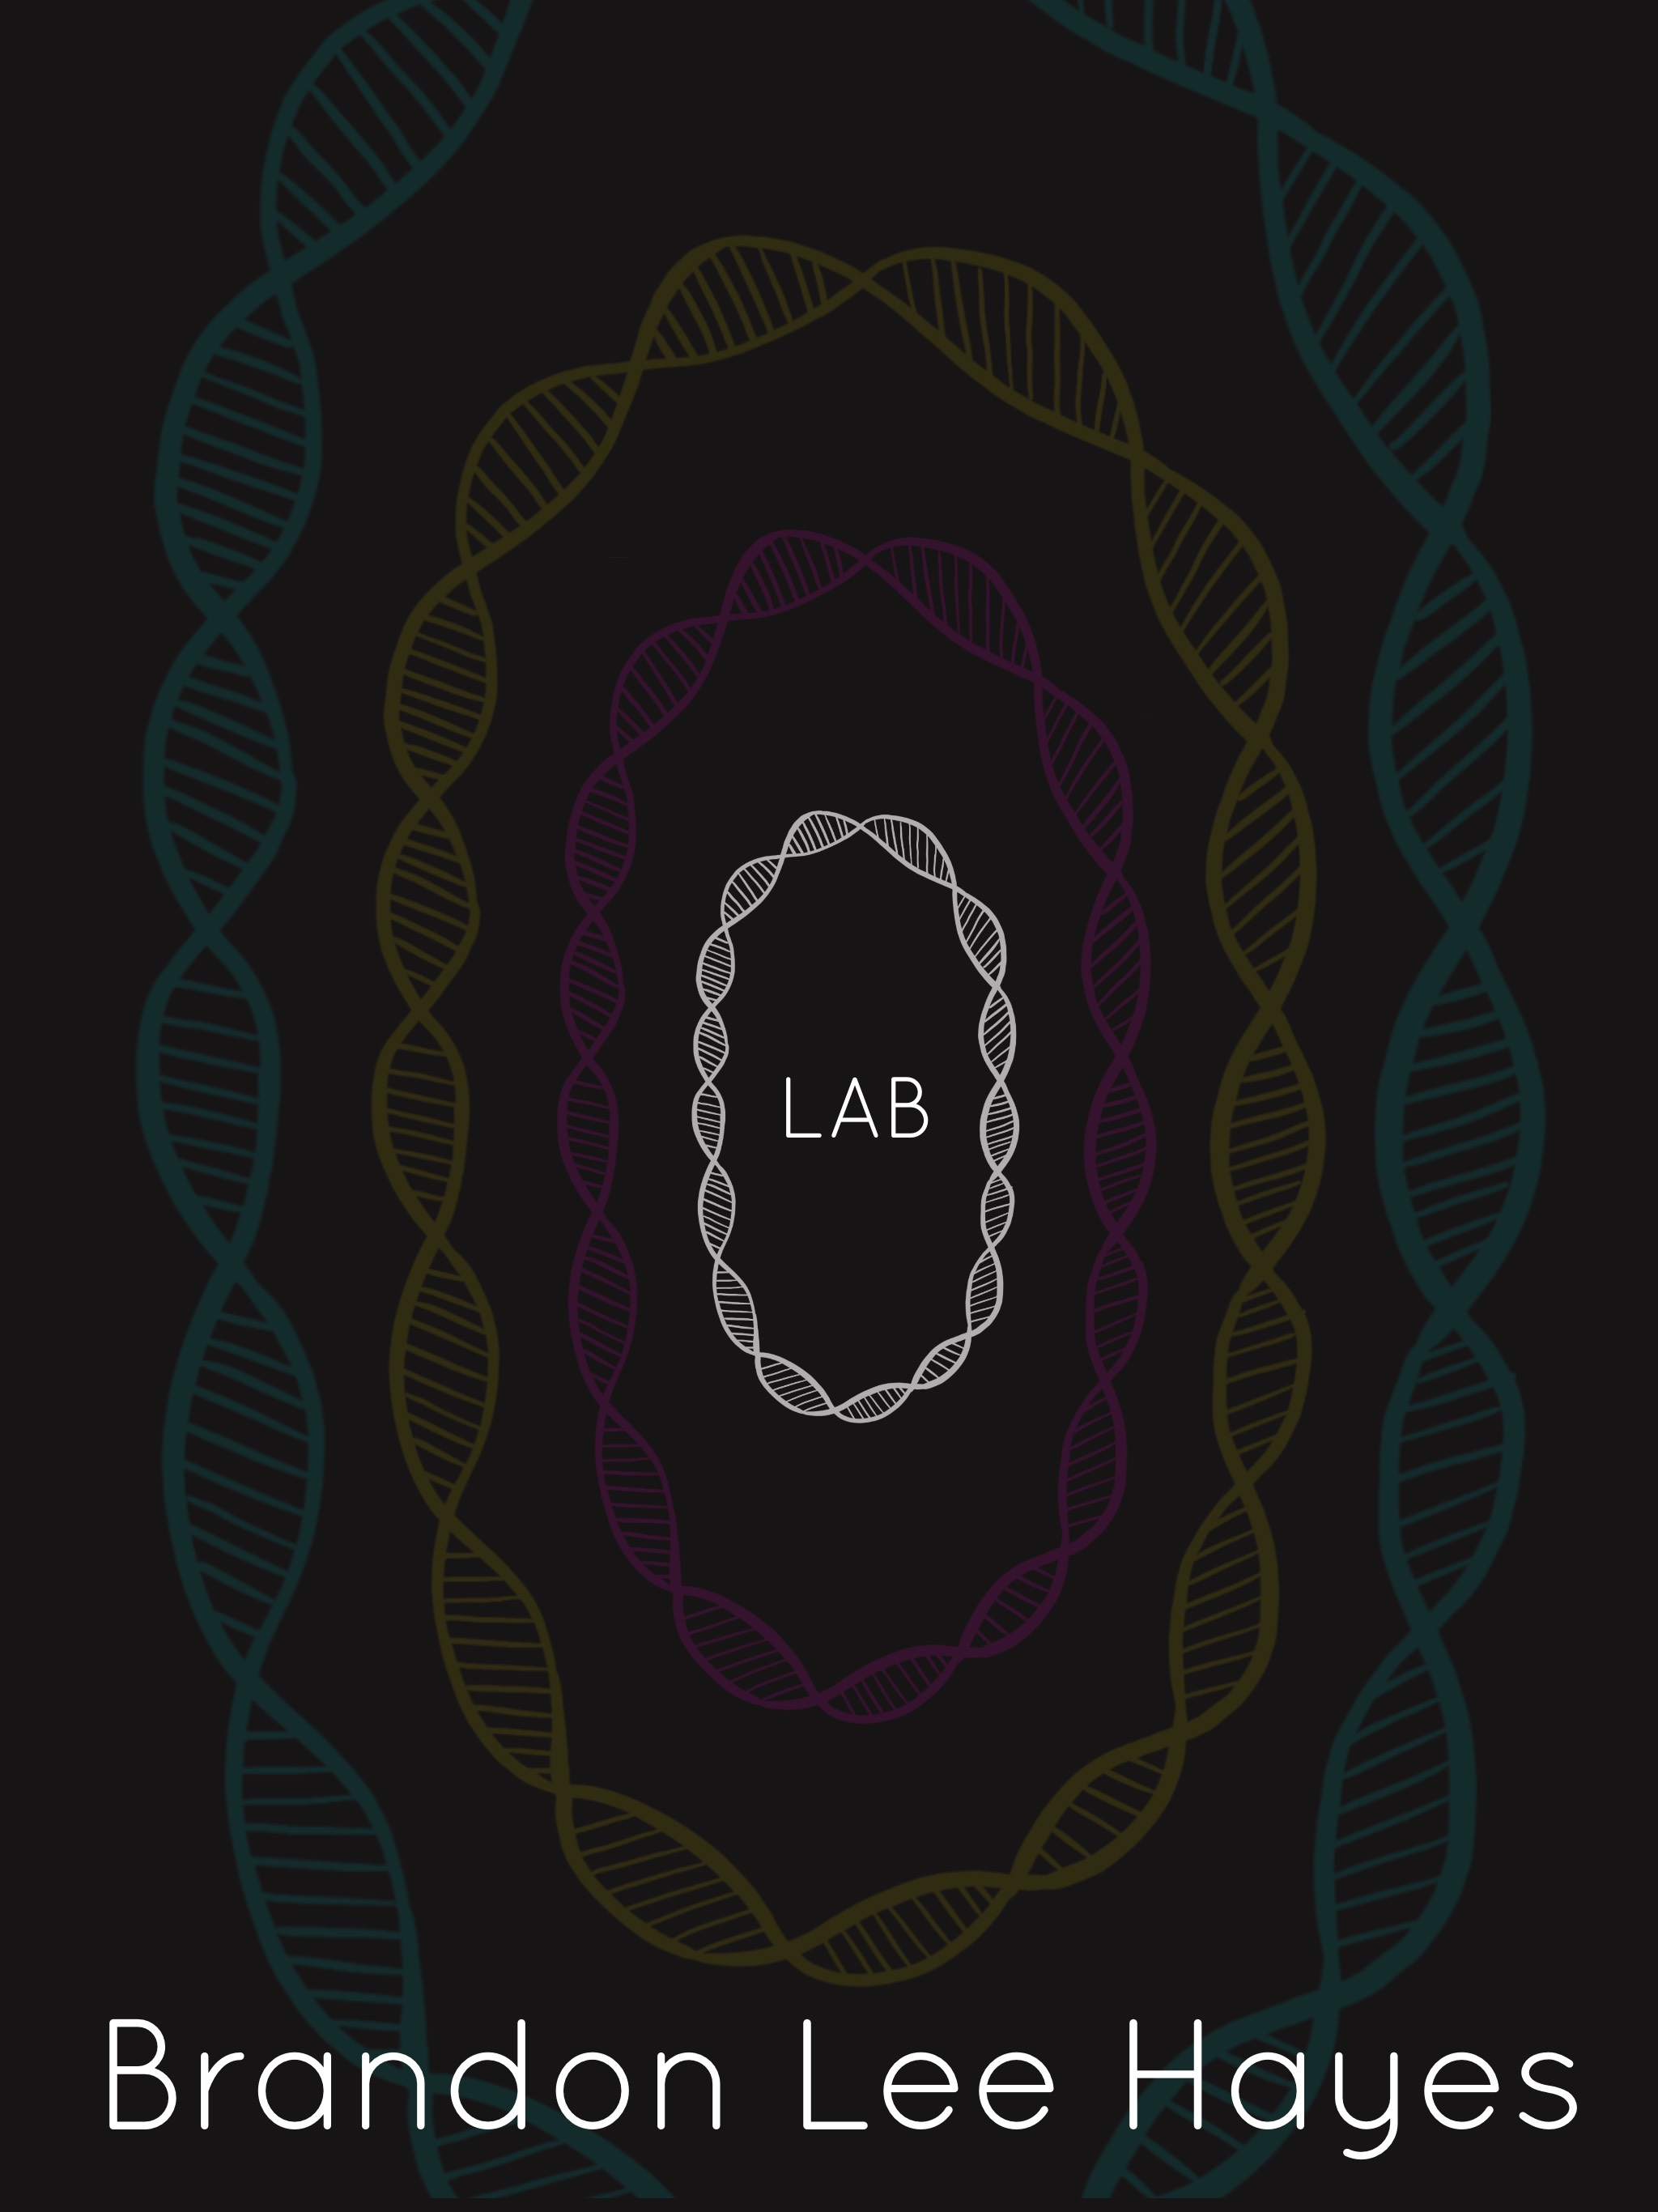 "Cover image for the short story lab zero. DNA structures spiraling around the word ""LAB"" making zeros."